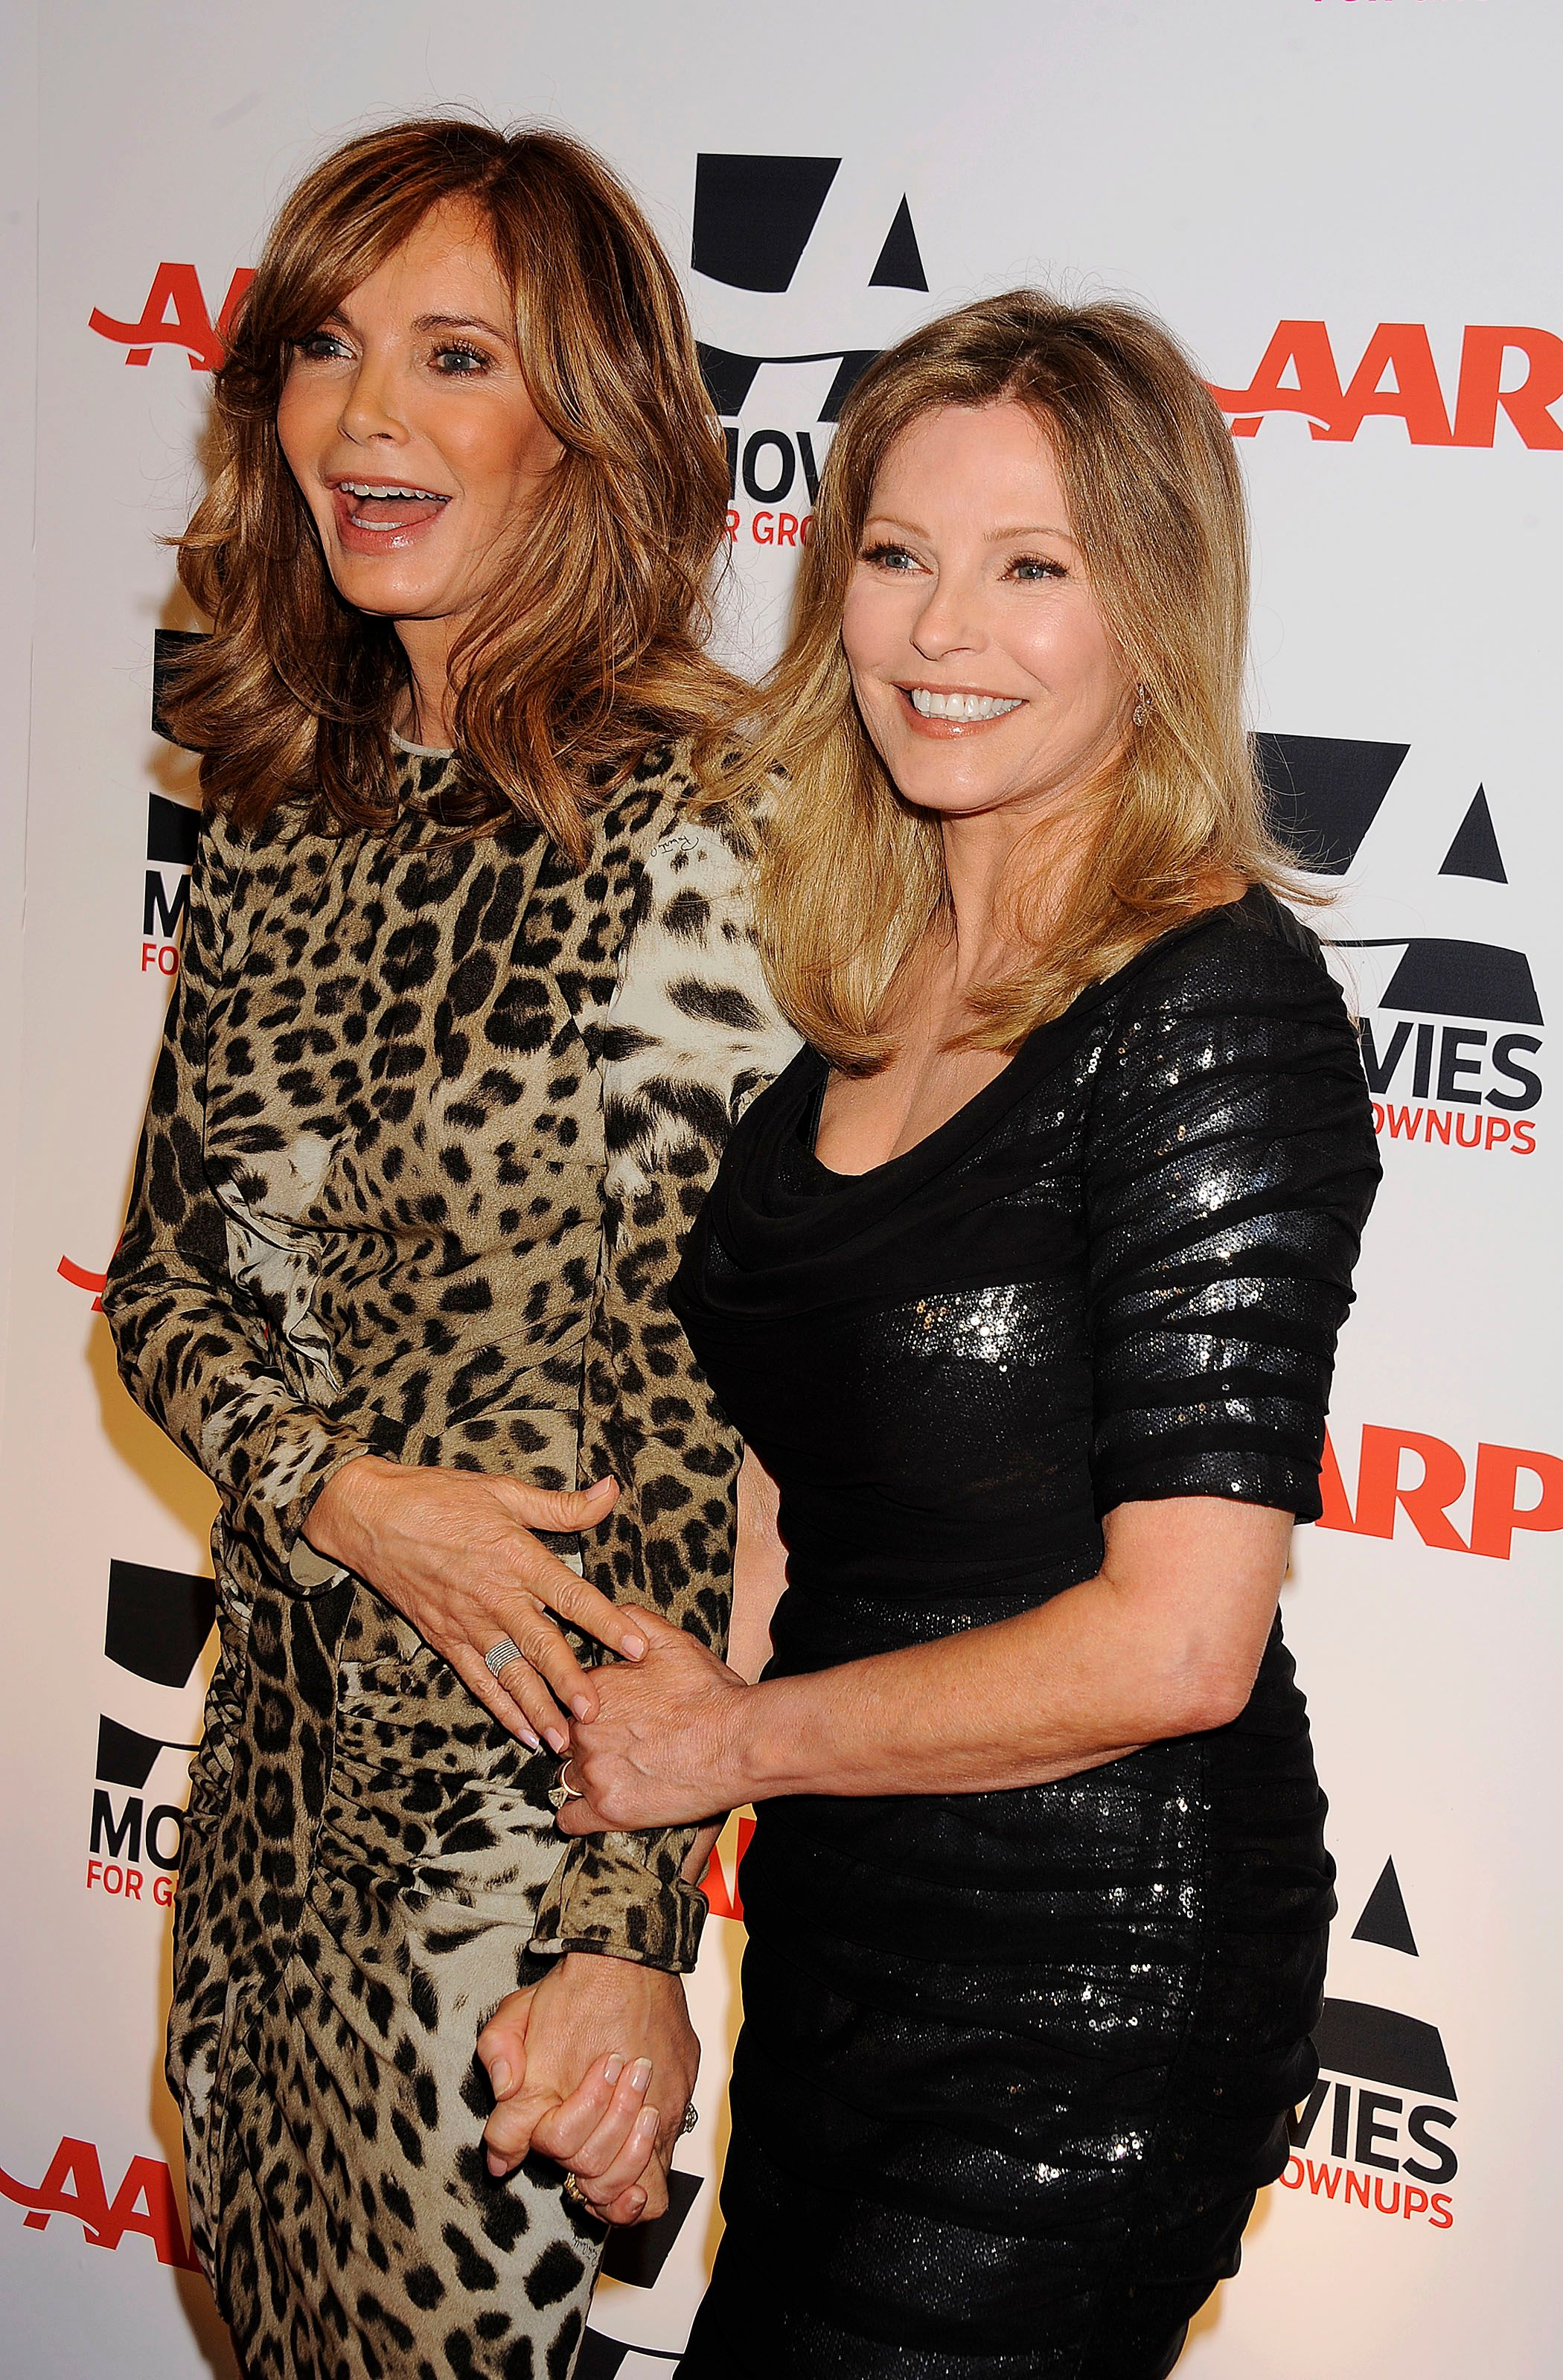 Jaclyn Smith and Cheryl Ladd at the AARP The Magazine's 10th Annual Movies for Grownups Award Gala at The Beverly Hilton hotel on February 7, 2011 | Photo: Getty Images